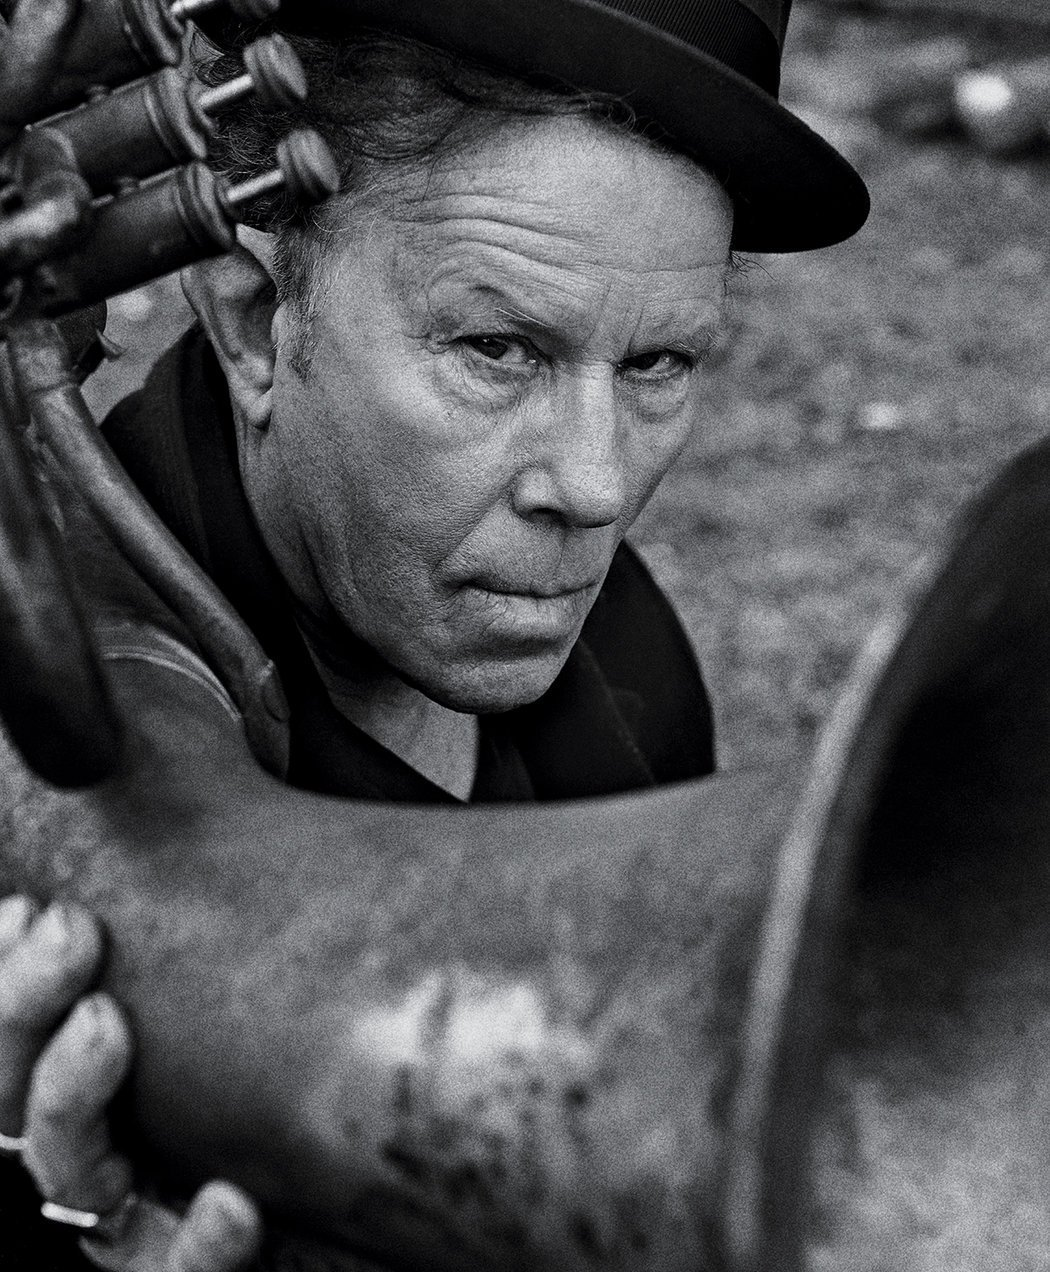 Happy birthday Tom Waits. You cool mfer.